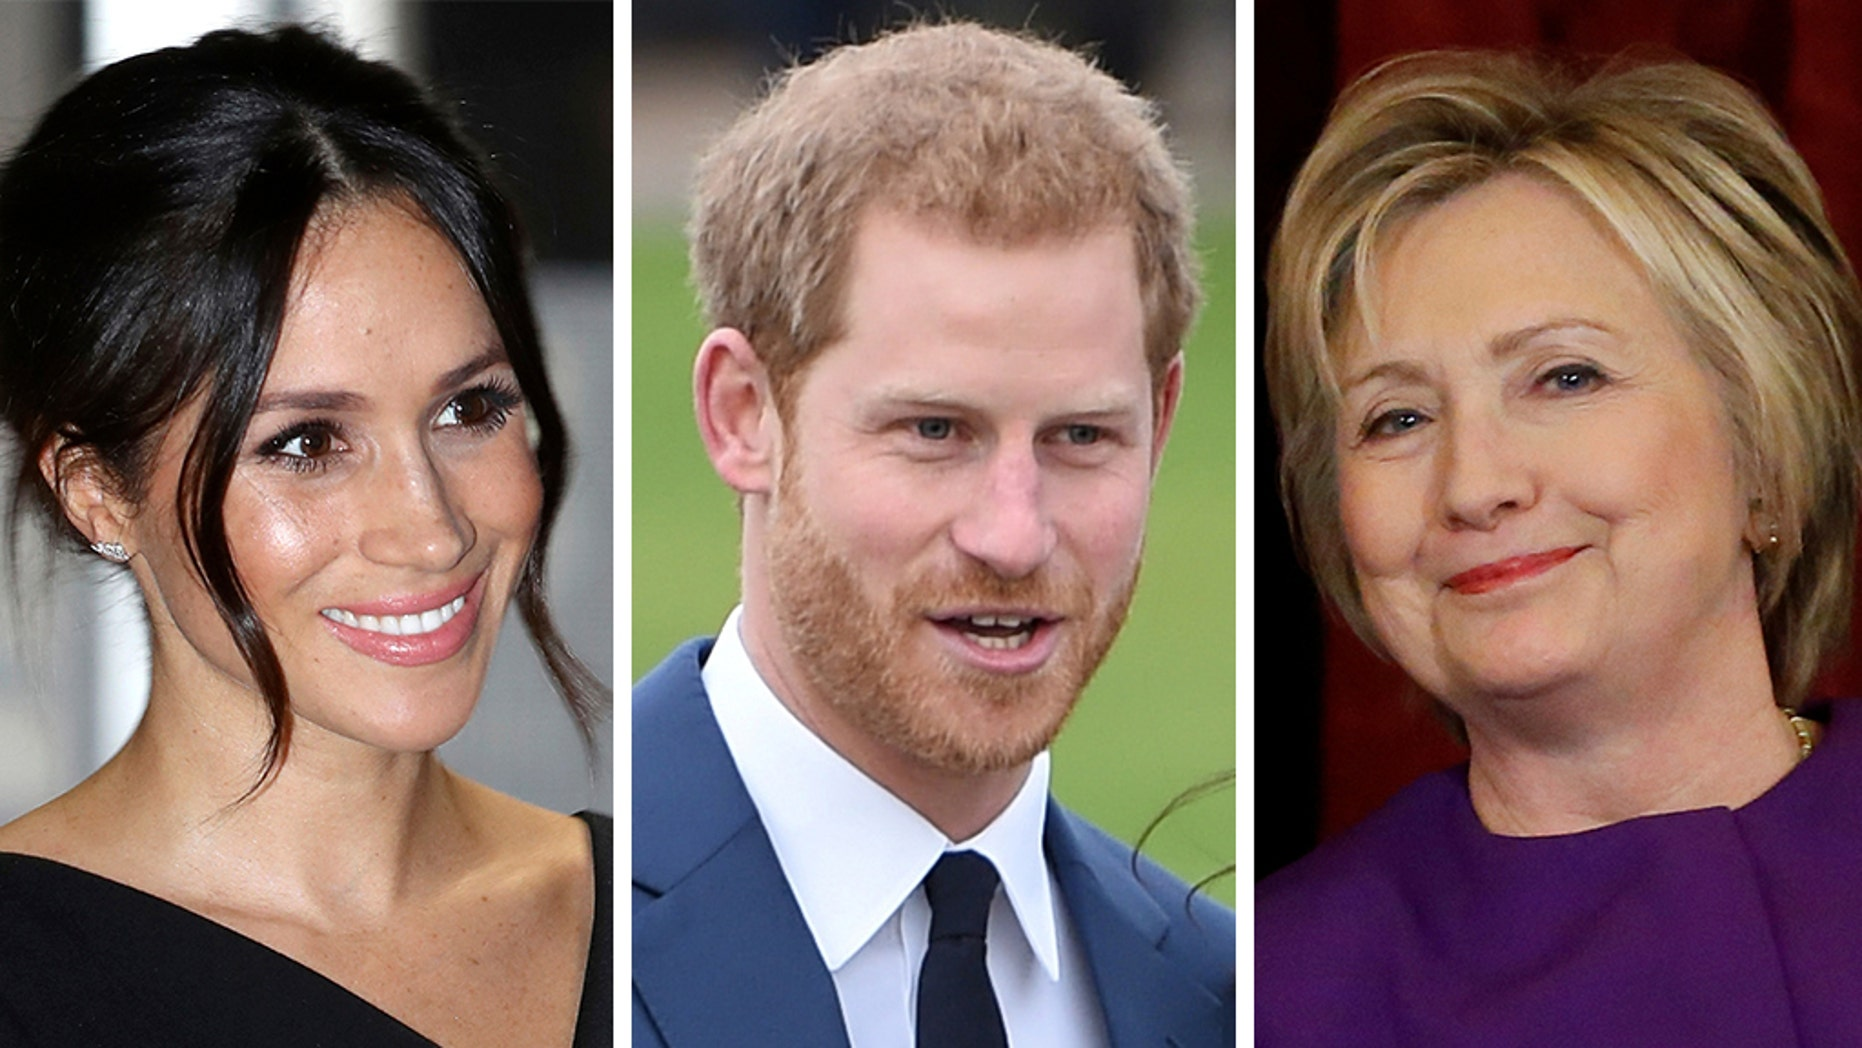 Meghan Markle and Prince Harry have hired Hillary Clinton's former presidential campaign senior adviser to head their communications team.